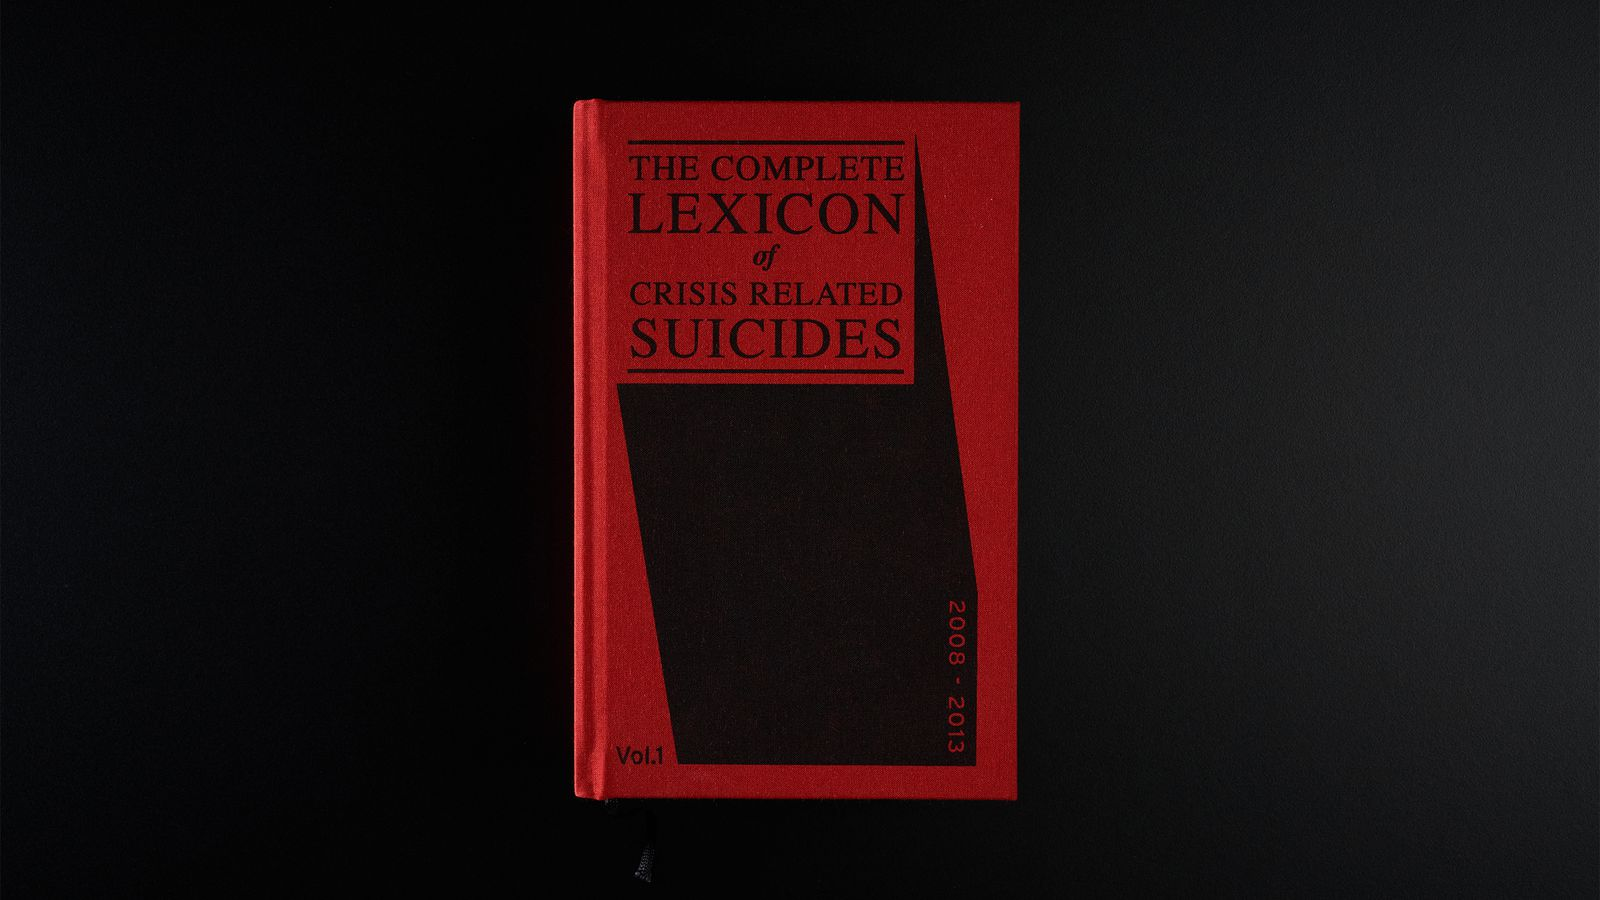 The complete lexicon of crisis related suicides - Cover.jpg